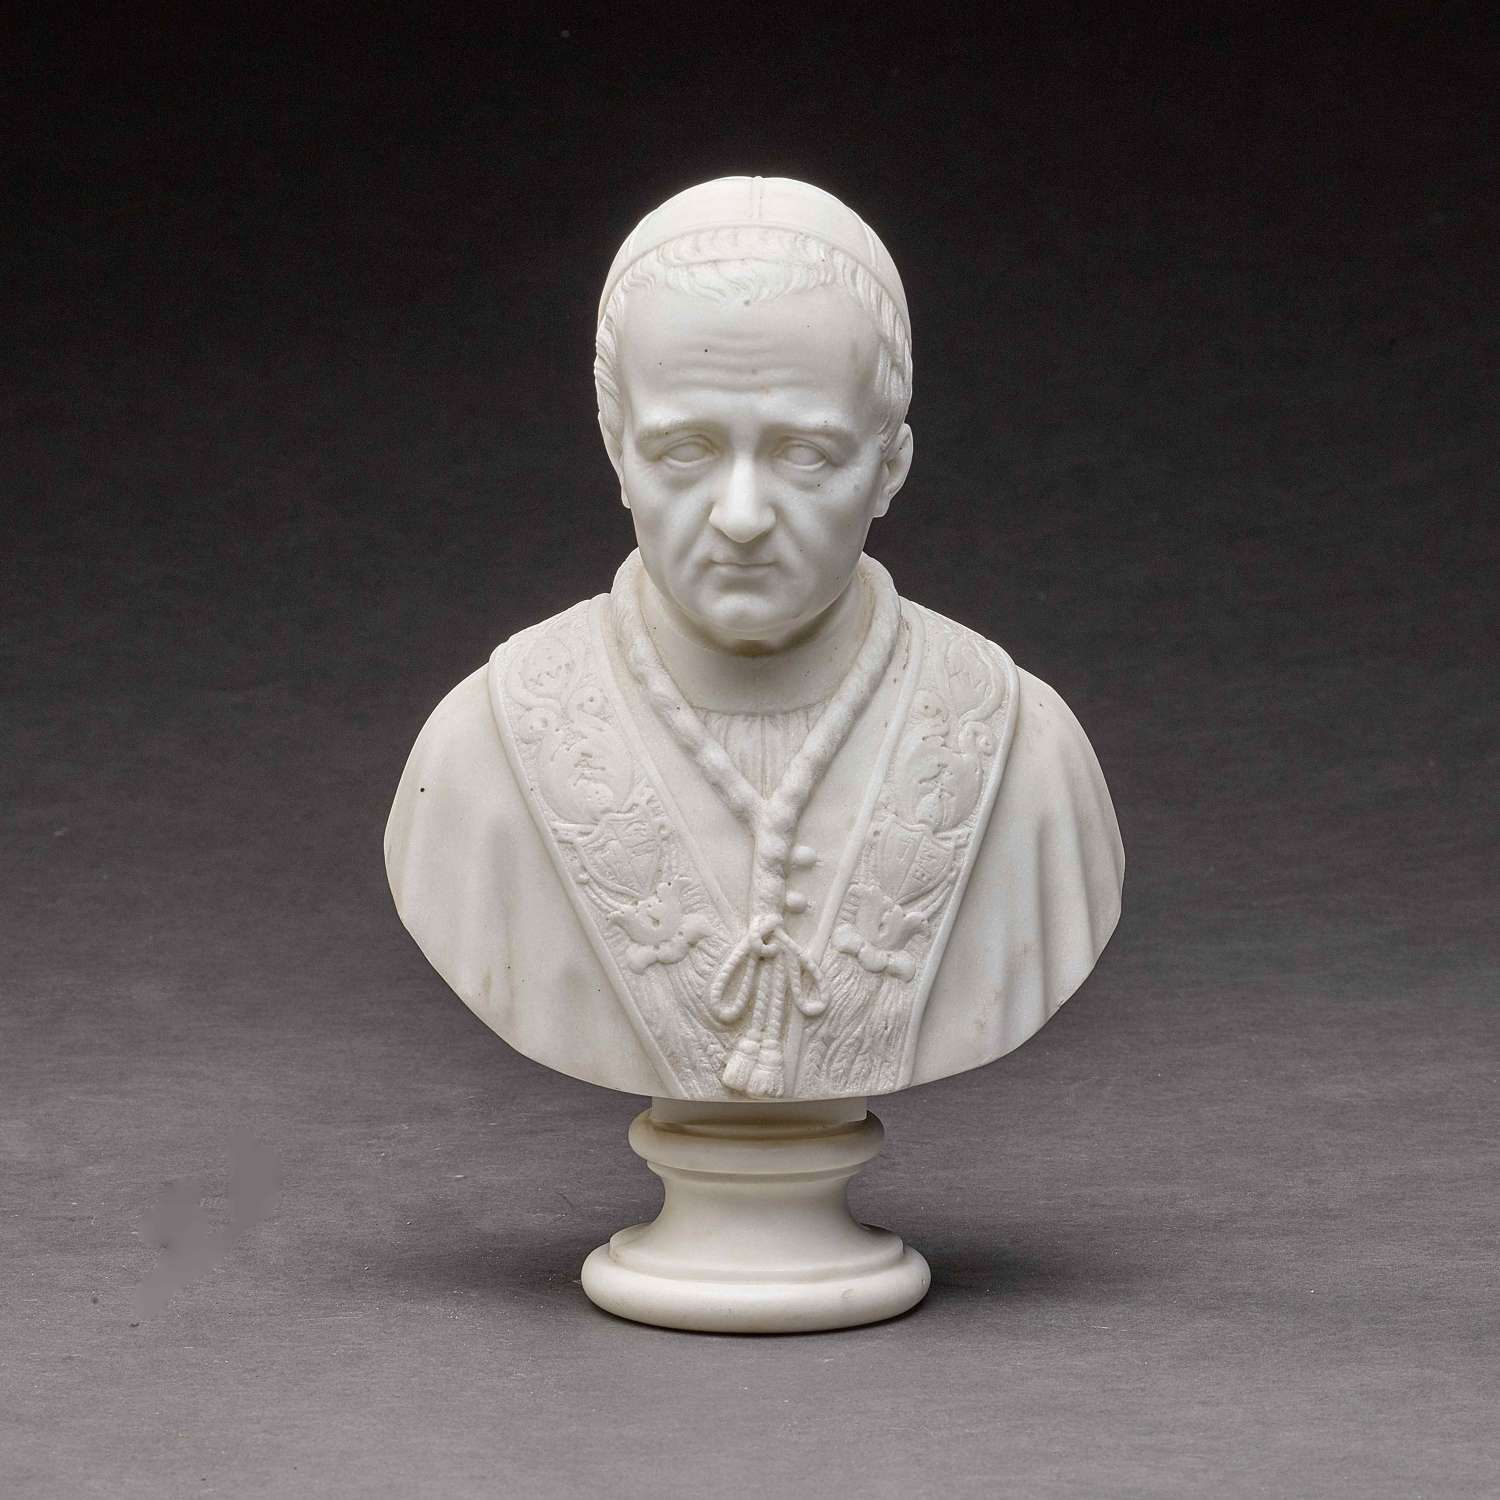 Marble Bust of POPE GREGORY XV1 (1765-1846)